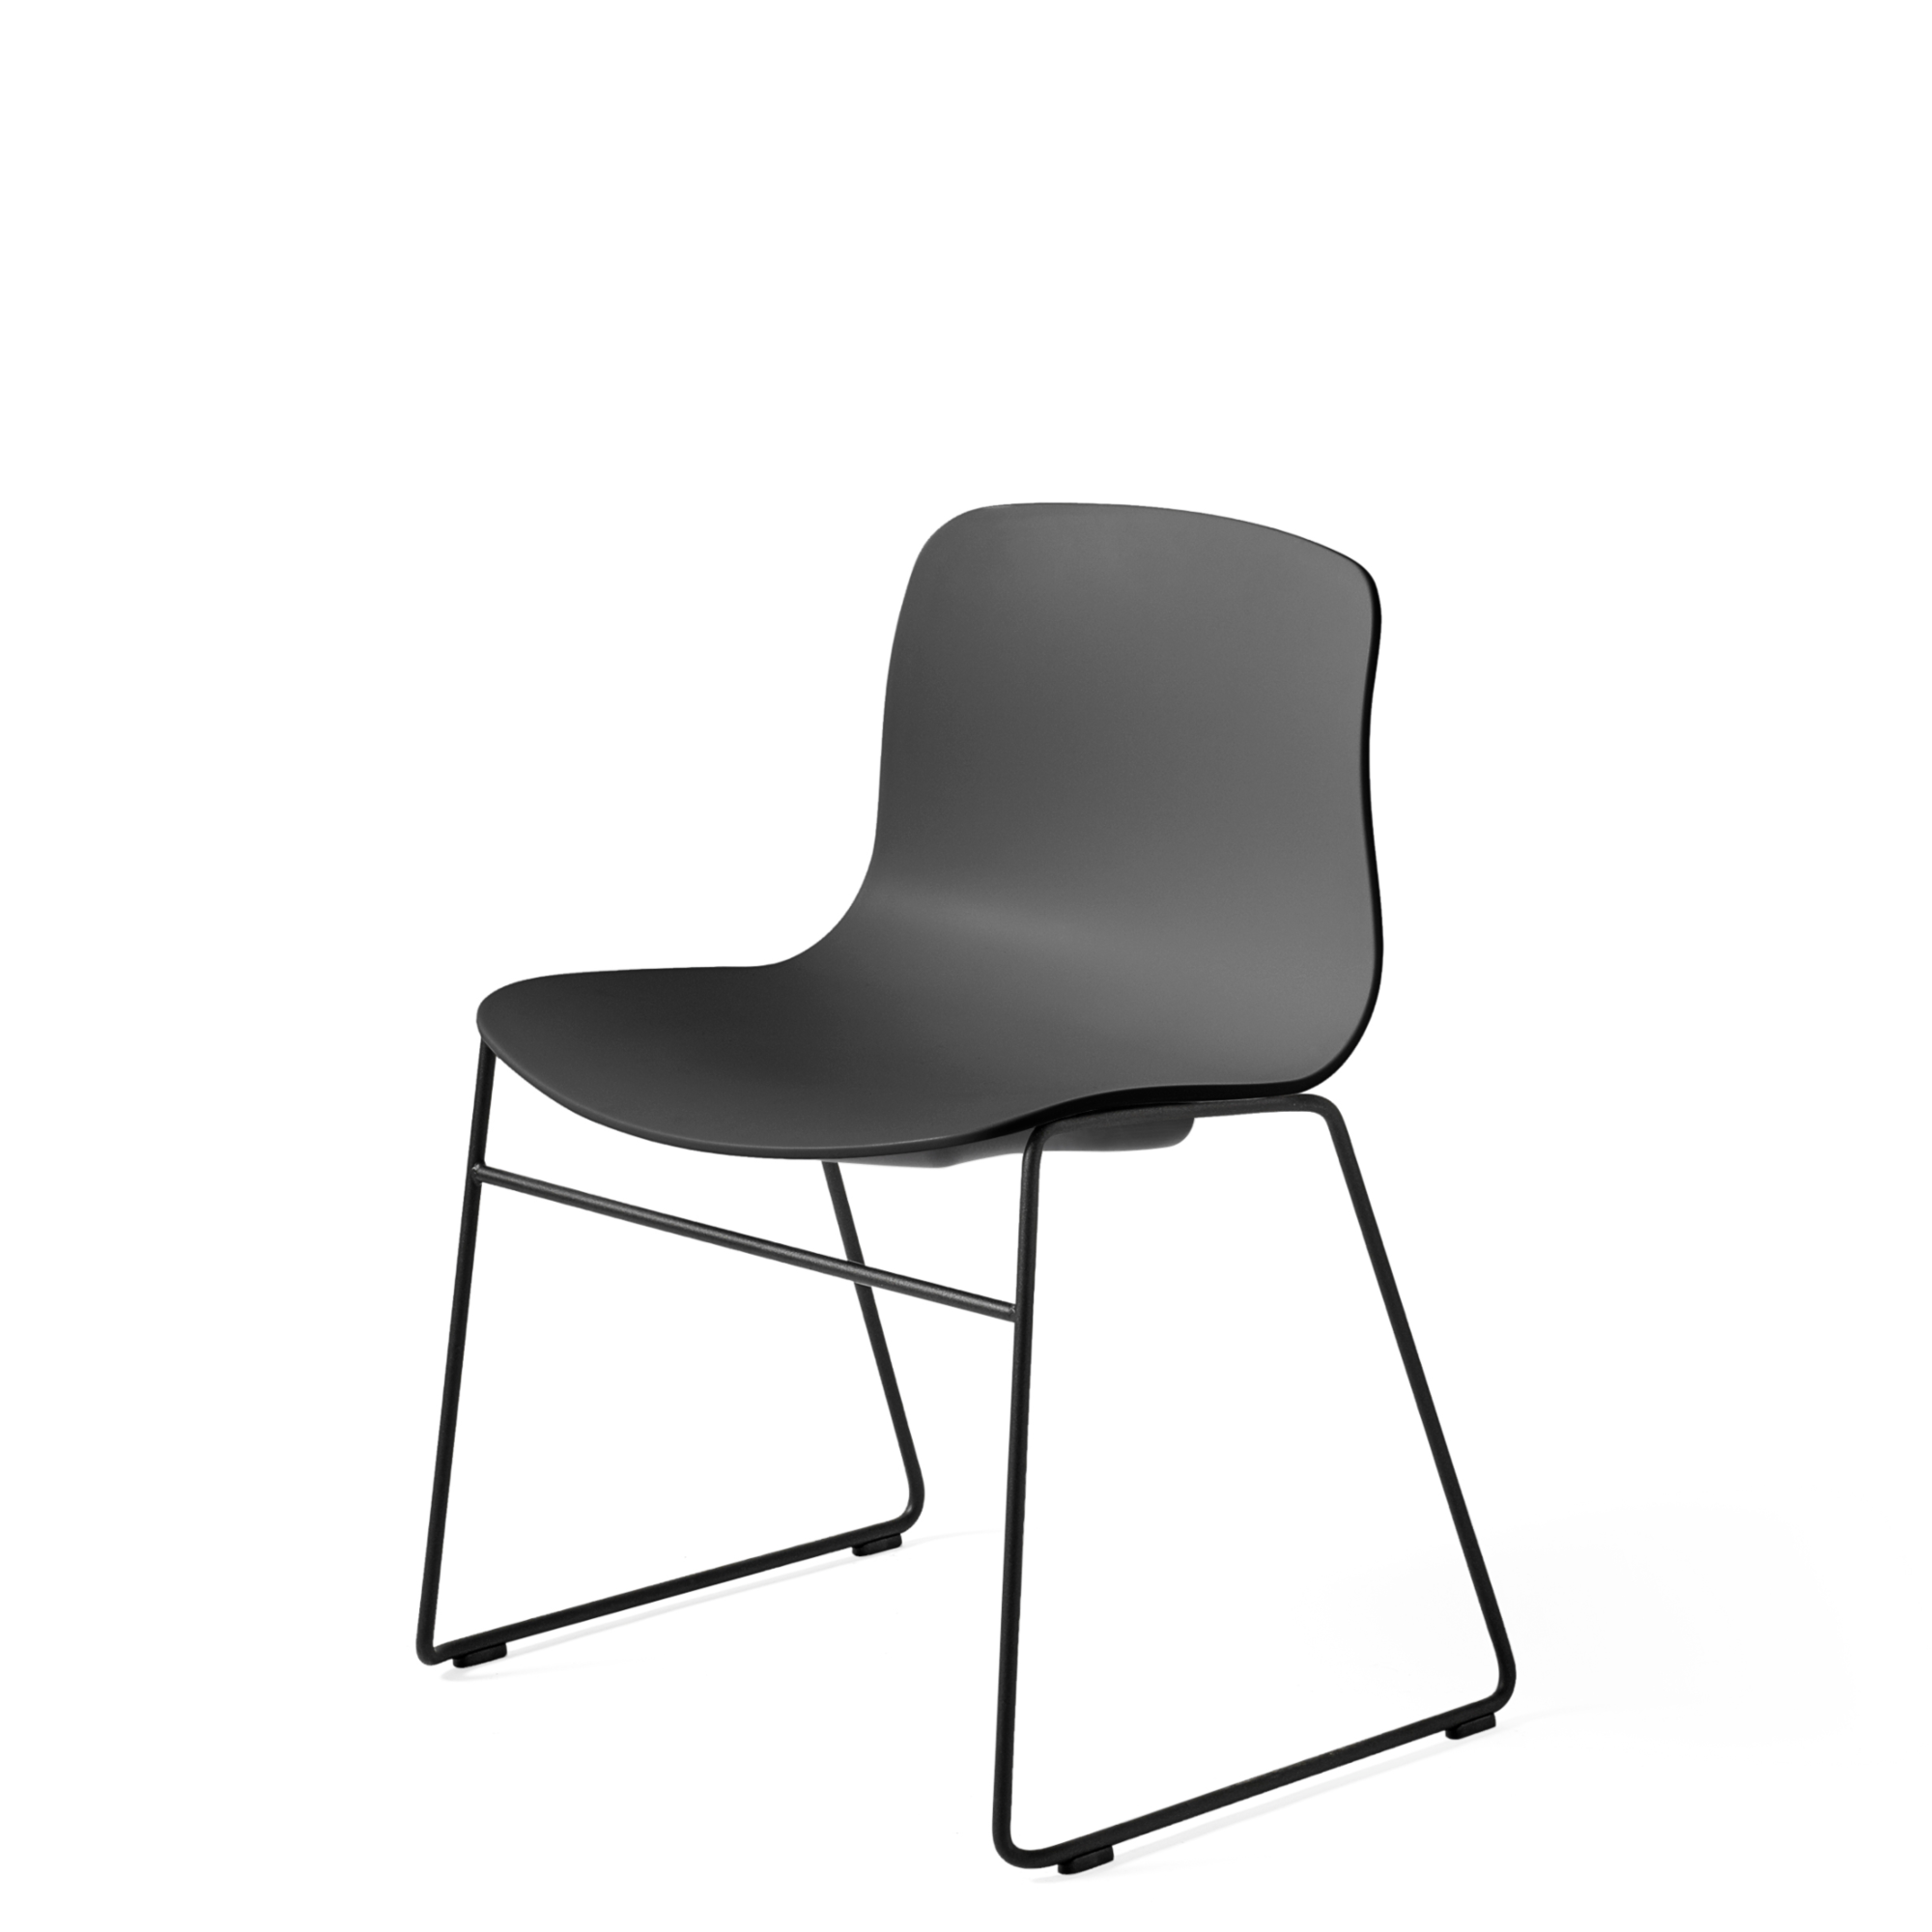 HAY About A Chair AAC 08 Soft Black Stackable Chair with Black Powder Coated Base